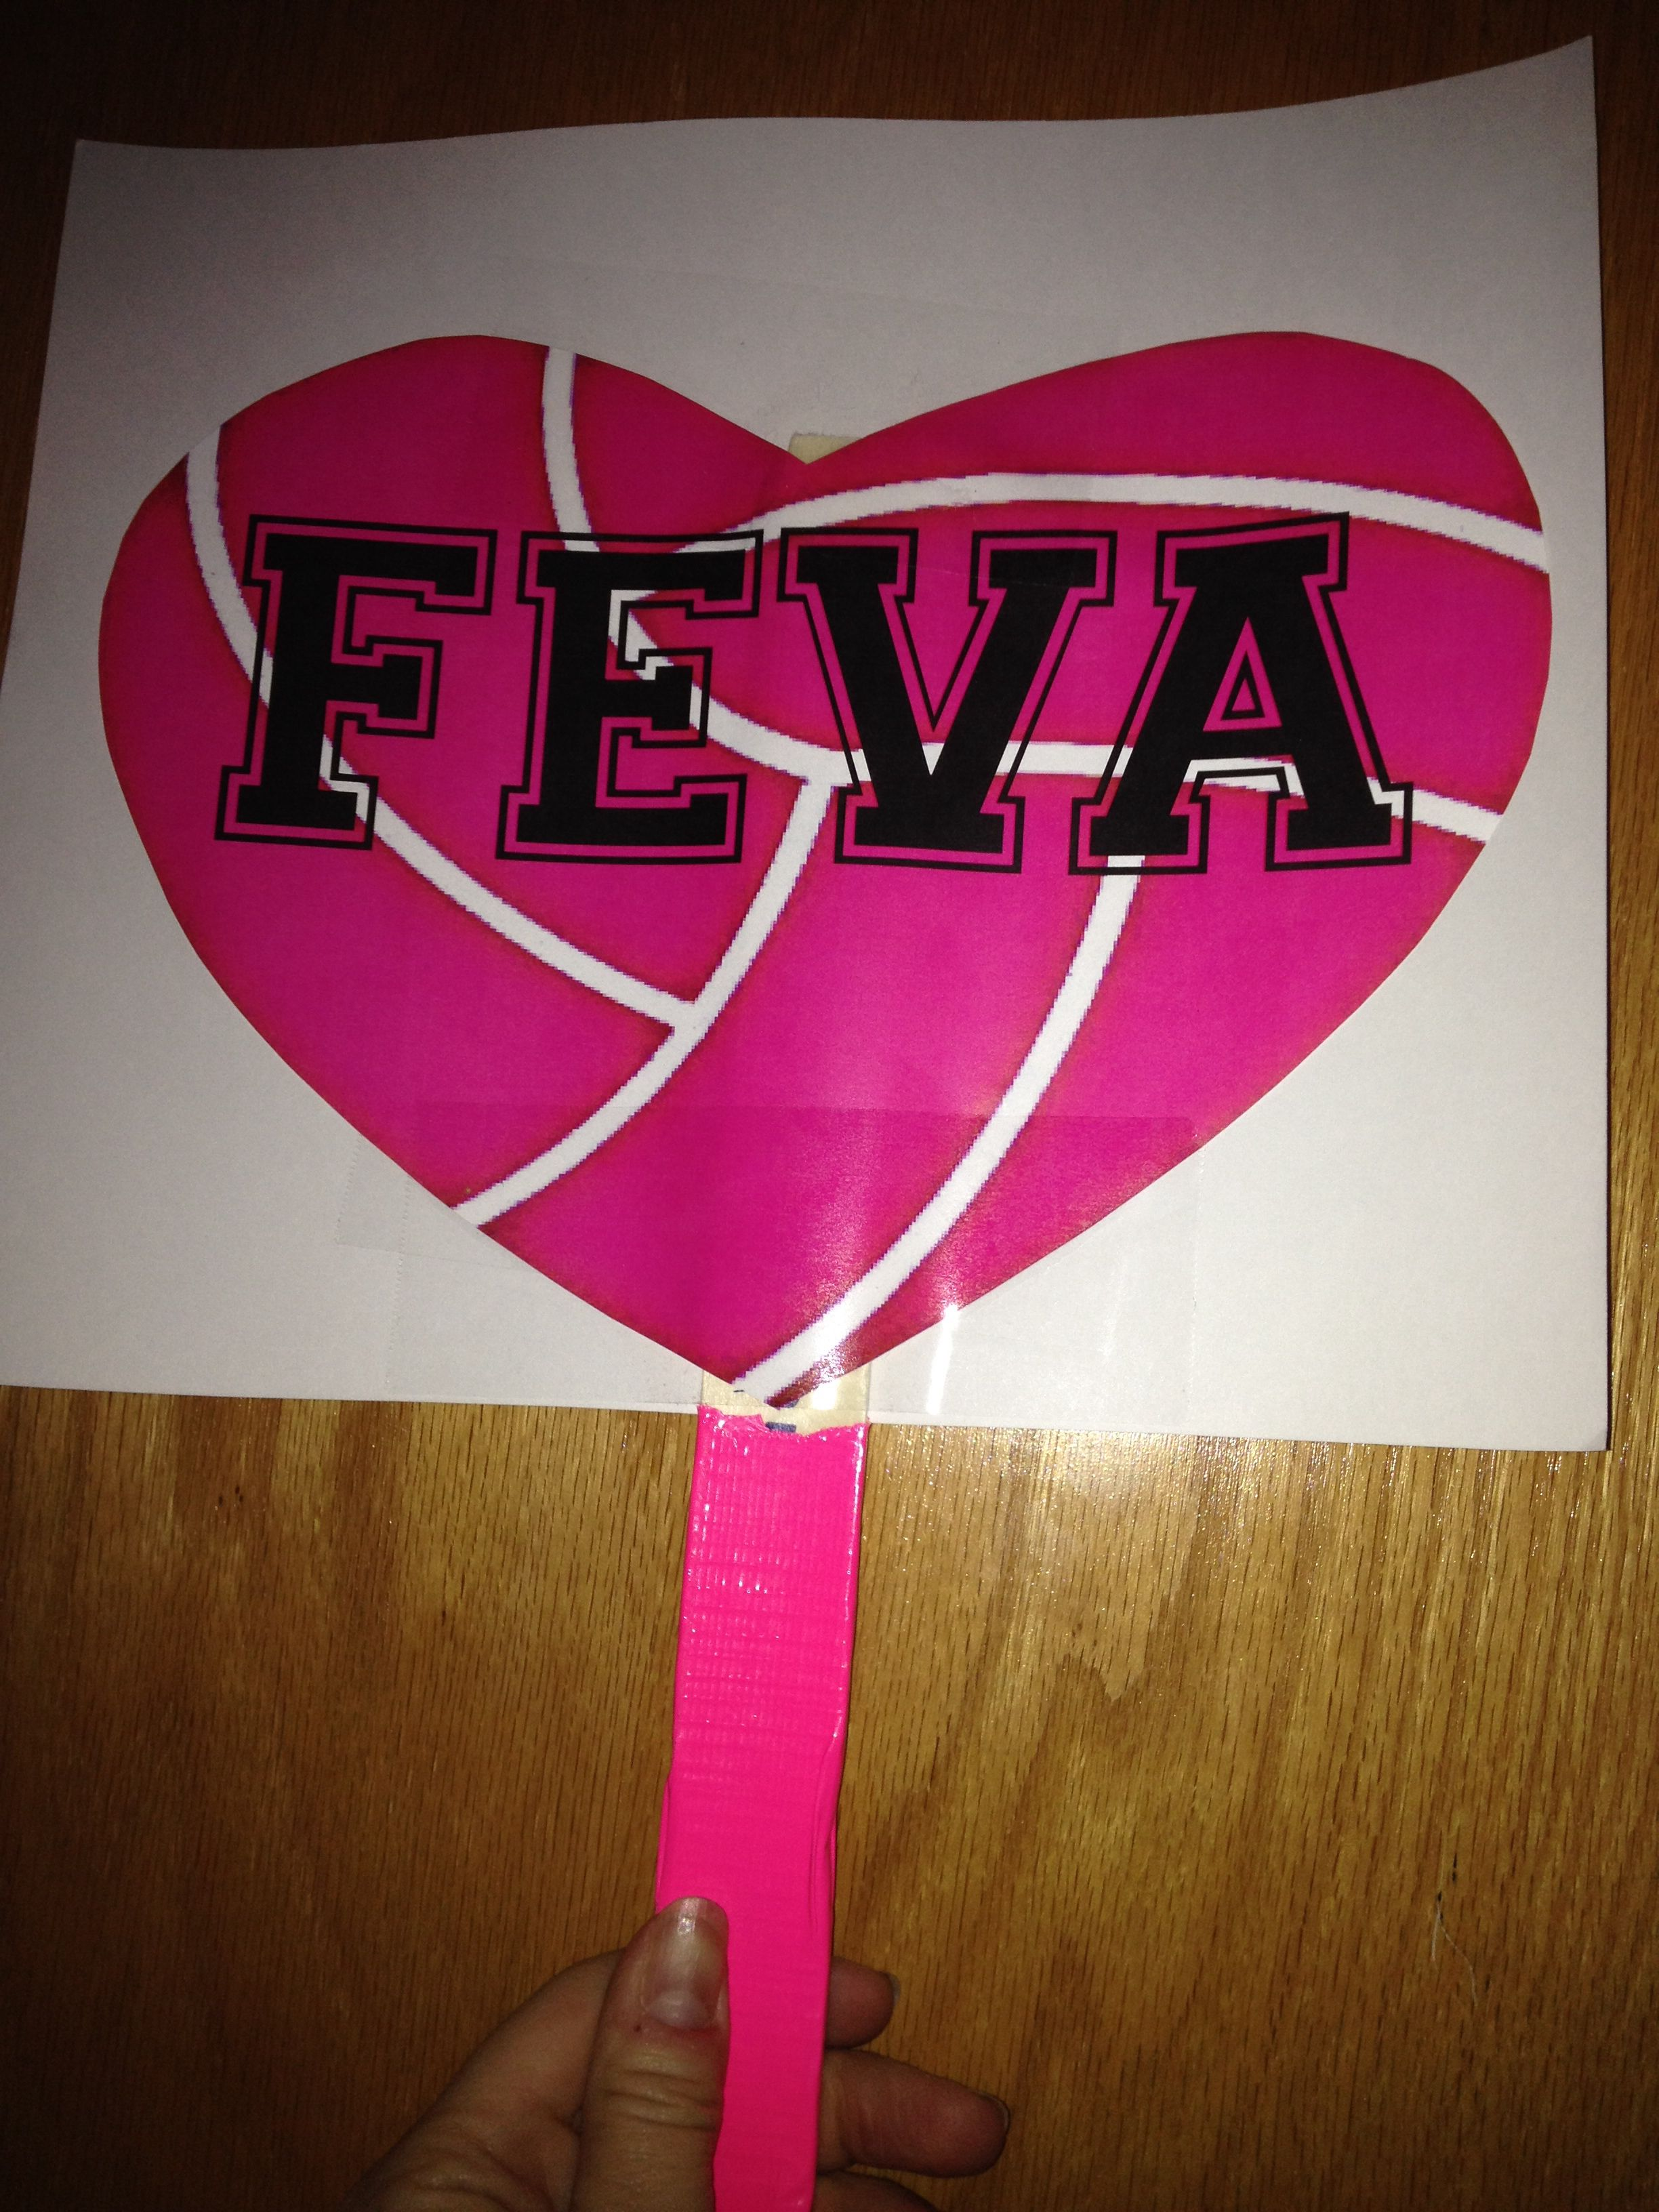 Cheer Signs For The Crowd To Encourage Players Poster Board Printed Out Pink Volleyballs Paint Sticks Covere Cheer Signs Volleyball Signs Volleyball Posters